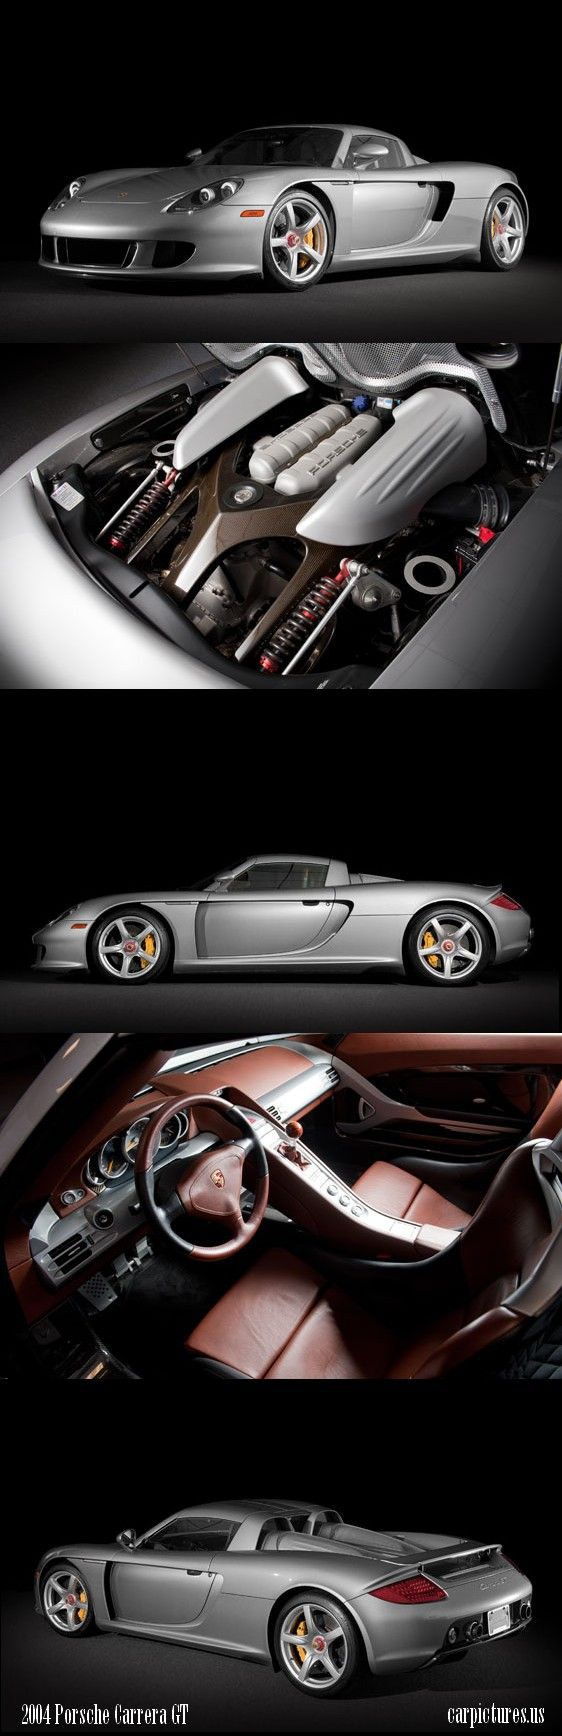 2004 Porsche Carrera GT. Source: RM Auctions. ✏✏✏✏✏✏✏✏✏✏✏✏✏✏✏✏ AUTRES VEHICULES - OTHER VEHICLES   ☞ https://fr.pinterest.com/barbierjeanf/pin-index-voitures-v%C3%A9hicules/ ══════════════════════  BIJOUX  ☞ https://www.facebook.com/media/set/?set=a.1351591571533839&type=1&l=bb0129771f ✏✏✏✏✏✏✏✏✏✏✏✏✏✏✏✏